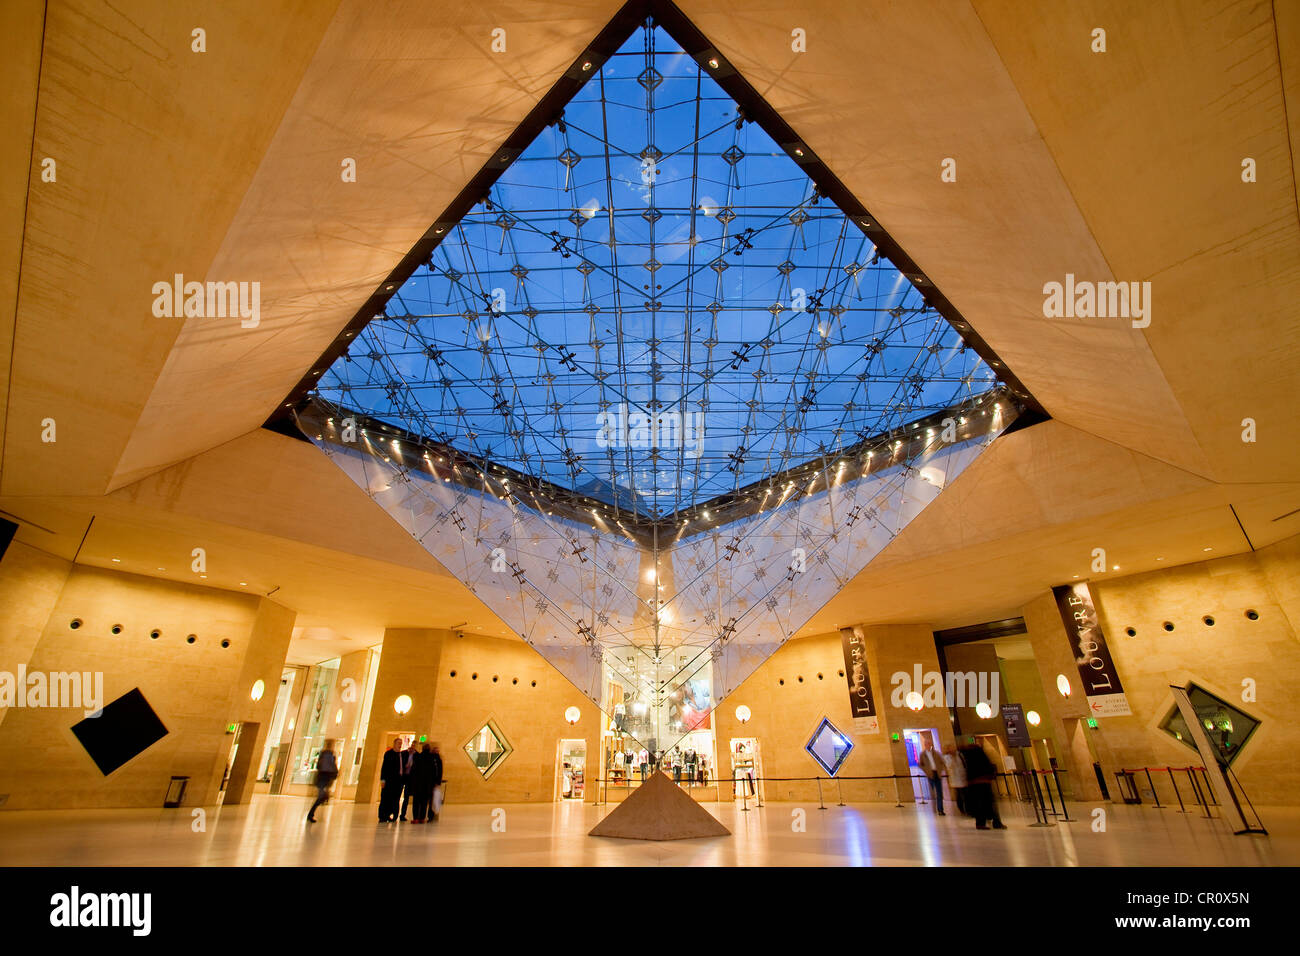 France, Paris, Carrousel du Louvre, inverted Pyramid by architect Ieoh Ming Pei - Stock Image